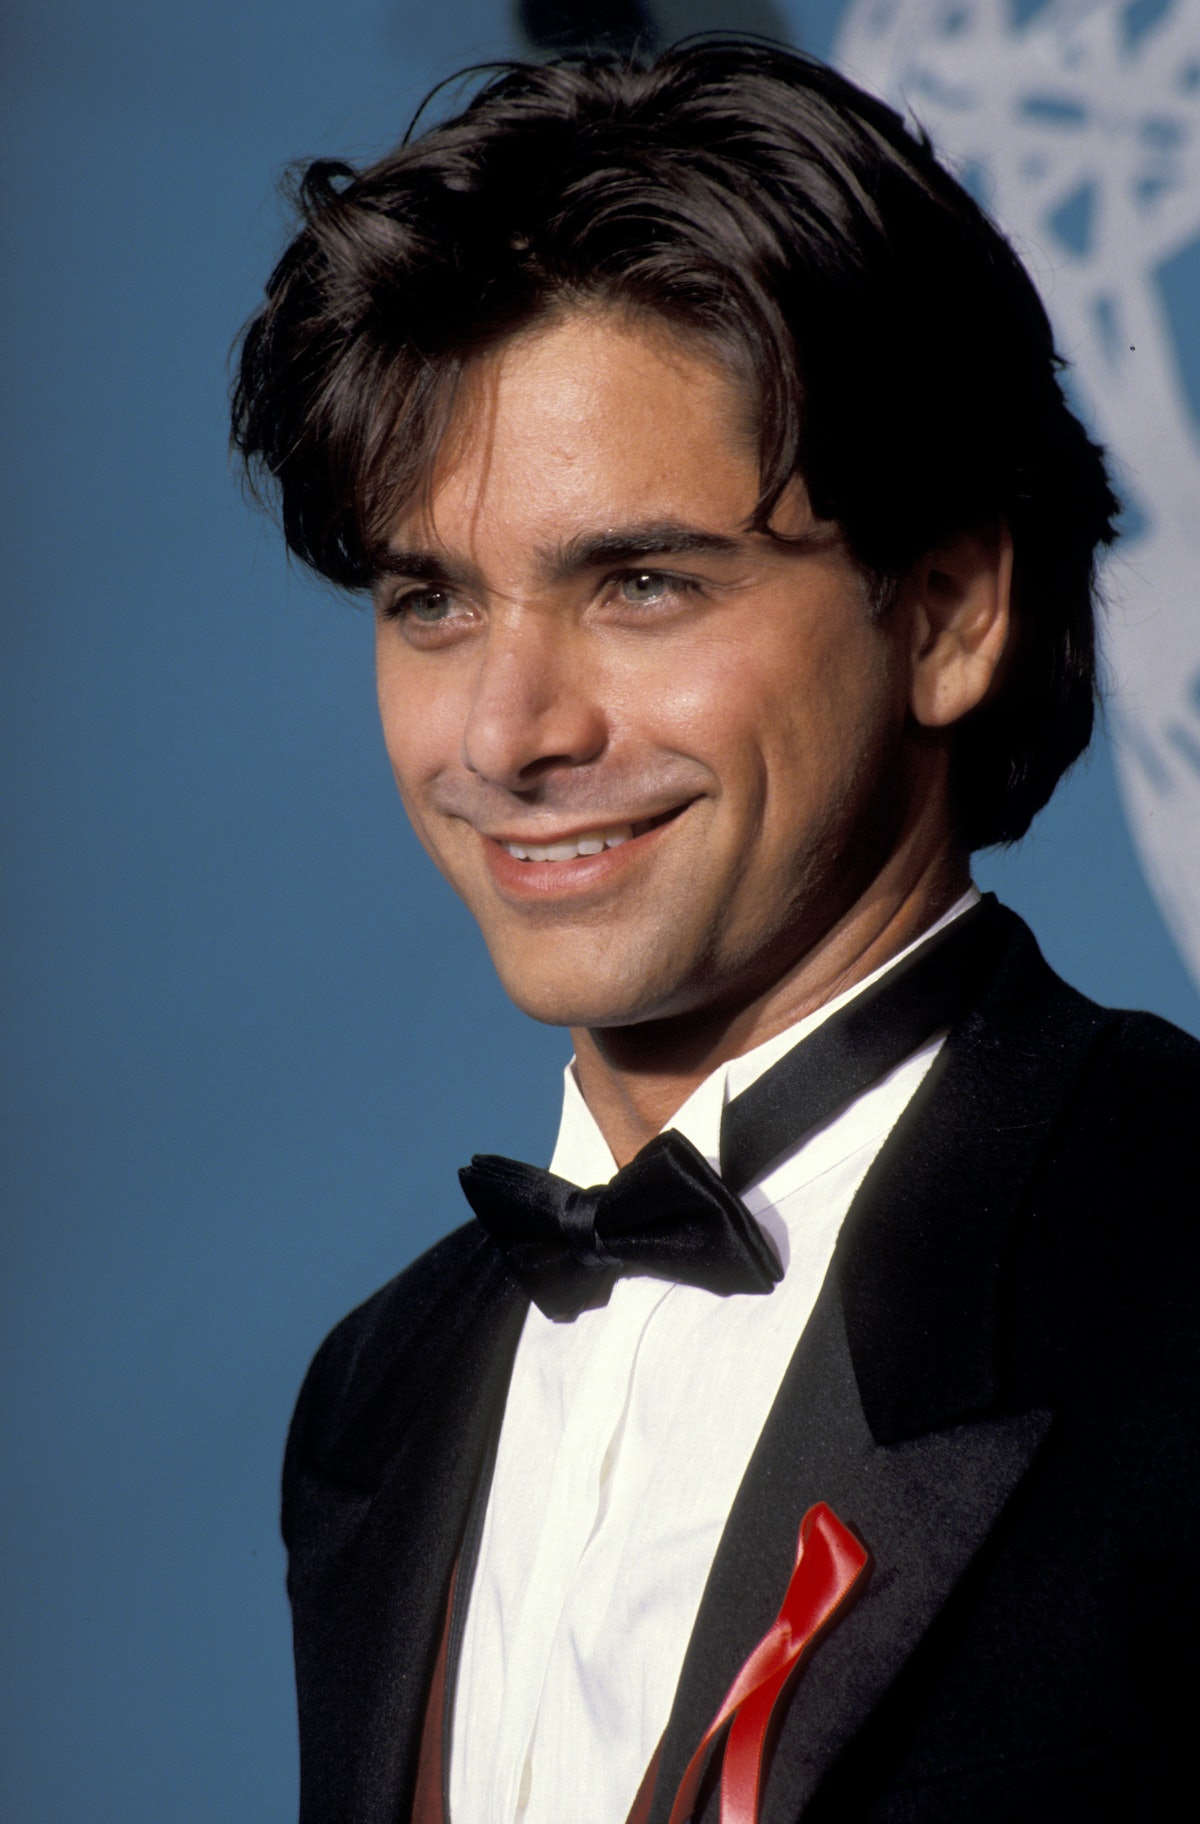 John Stamos (Photo by Jim Smeal/Ron Galella Collection via Getty Images)